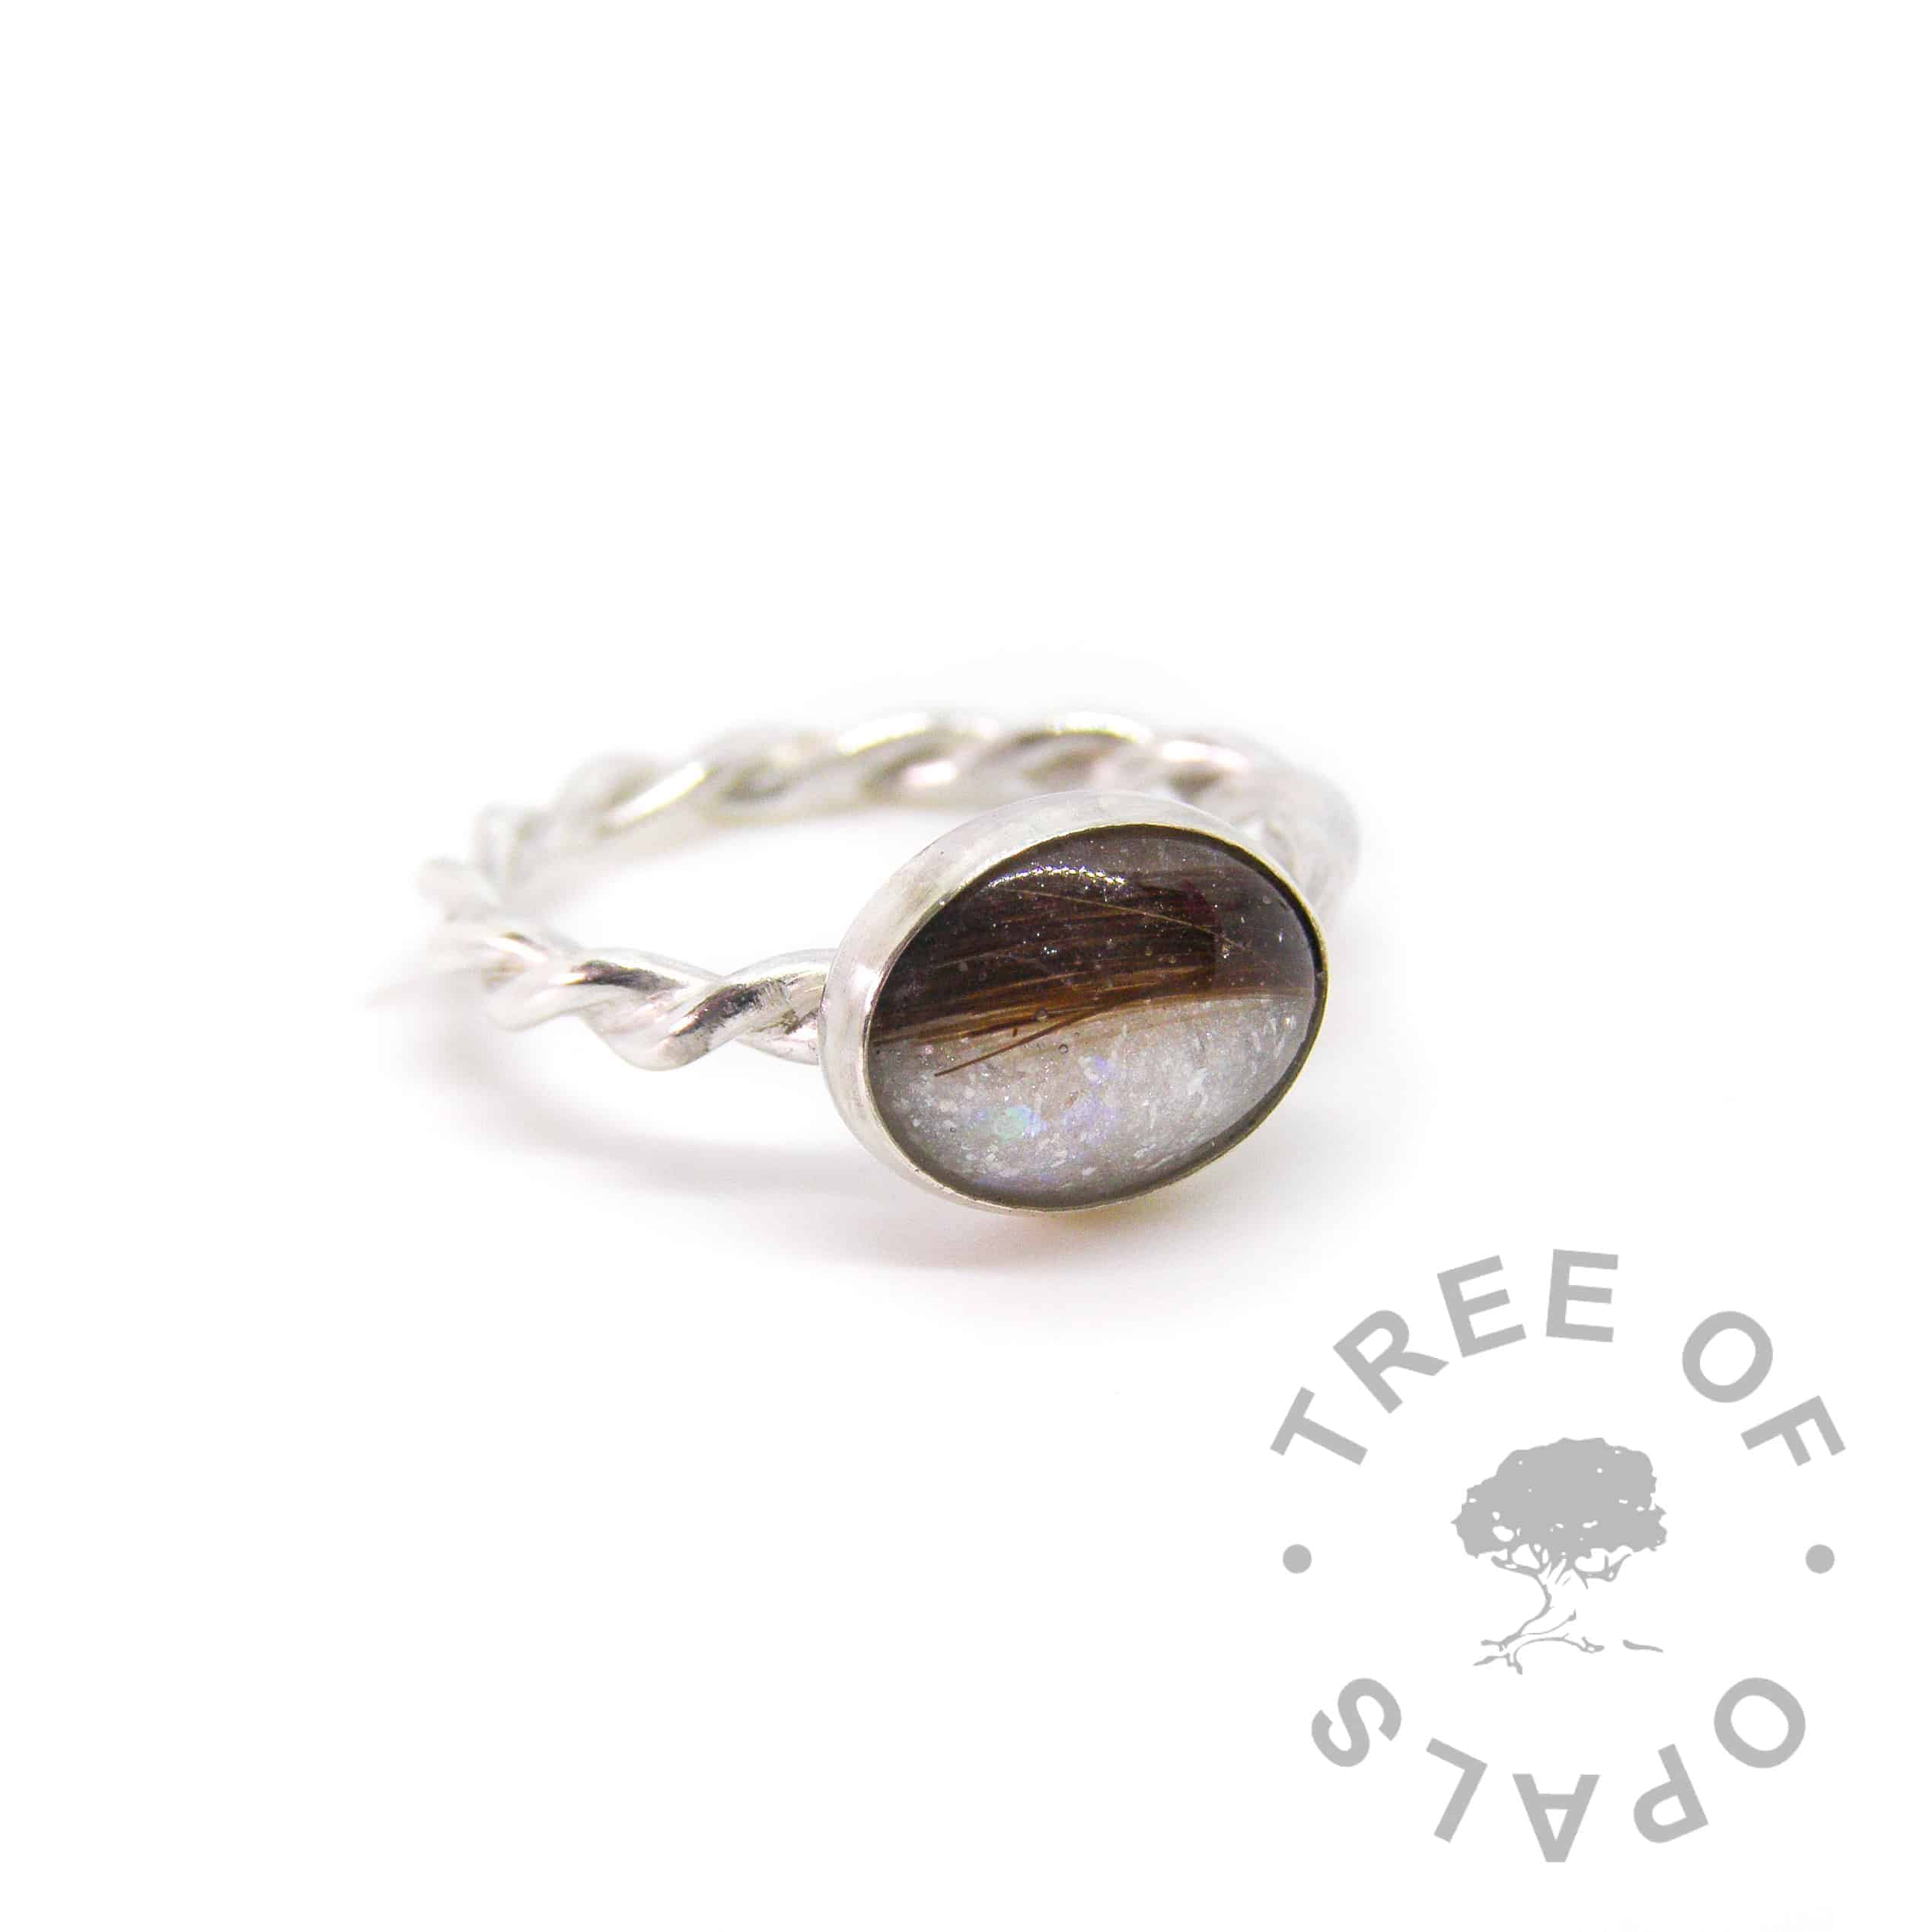 lock of hair ring, unicorn white sparkle mix on a twisted wire band, handmade by Tree of Opals in solid sterling silver